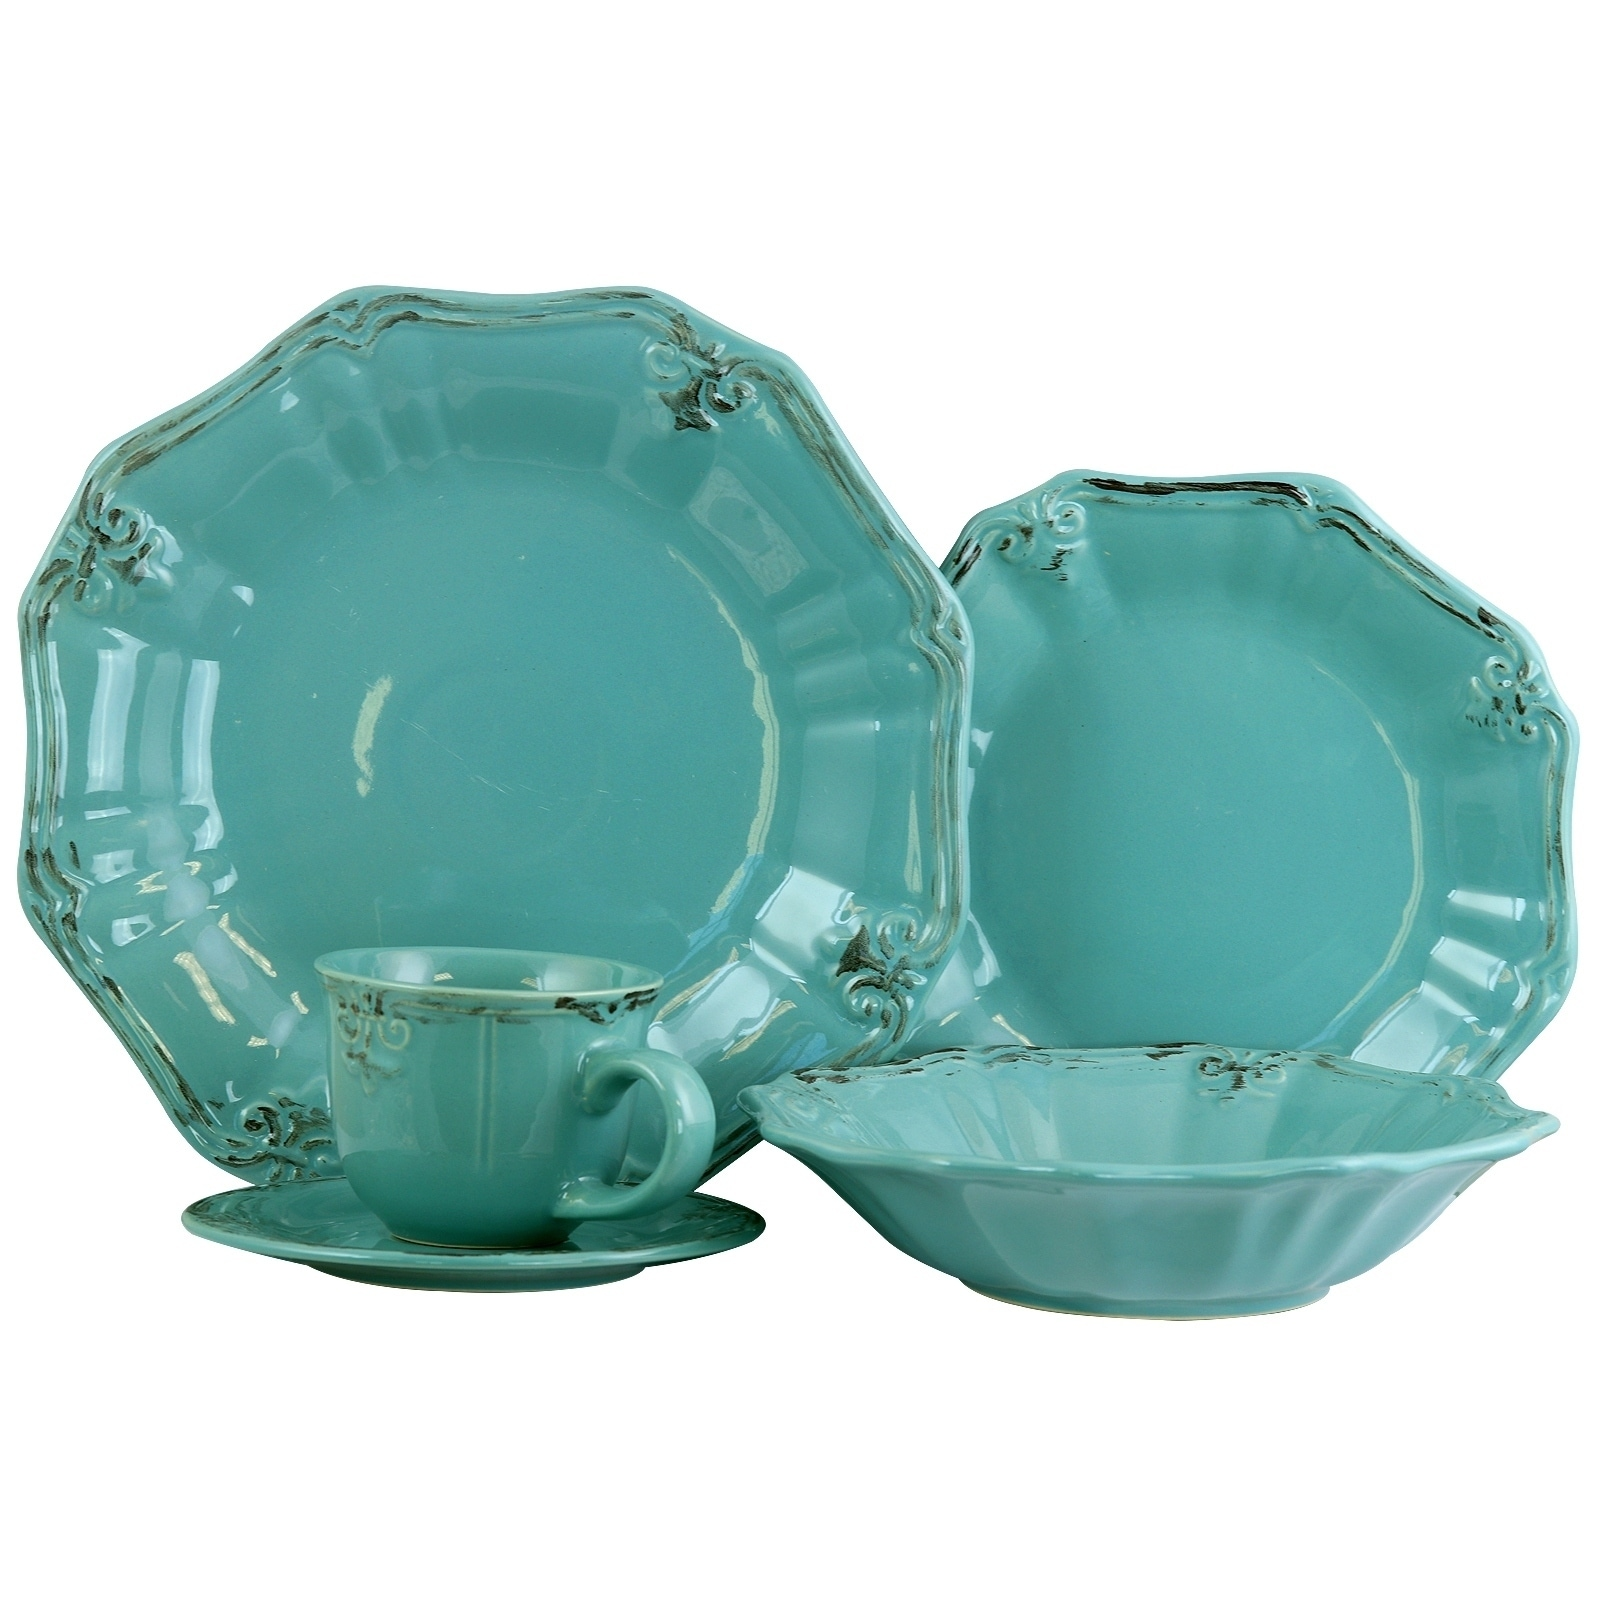 Elama Fleur De Lys 20 Piece Dinnerware Set in Turquoise - Free Shipping Today - Overstock - 24264179  sc 1 st  Overstock & Elama Fleur De Lys 20 Piece Dinnerware Set in Turquoise - Free ...